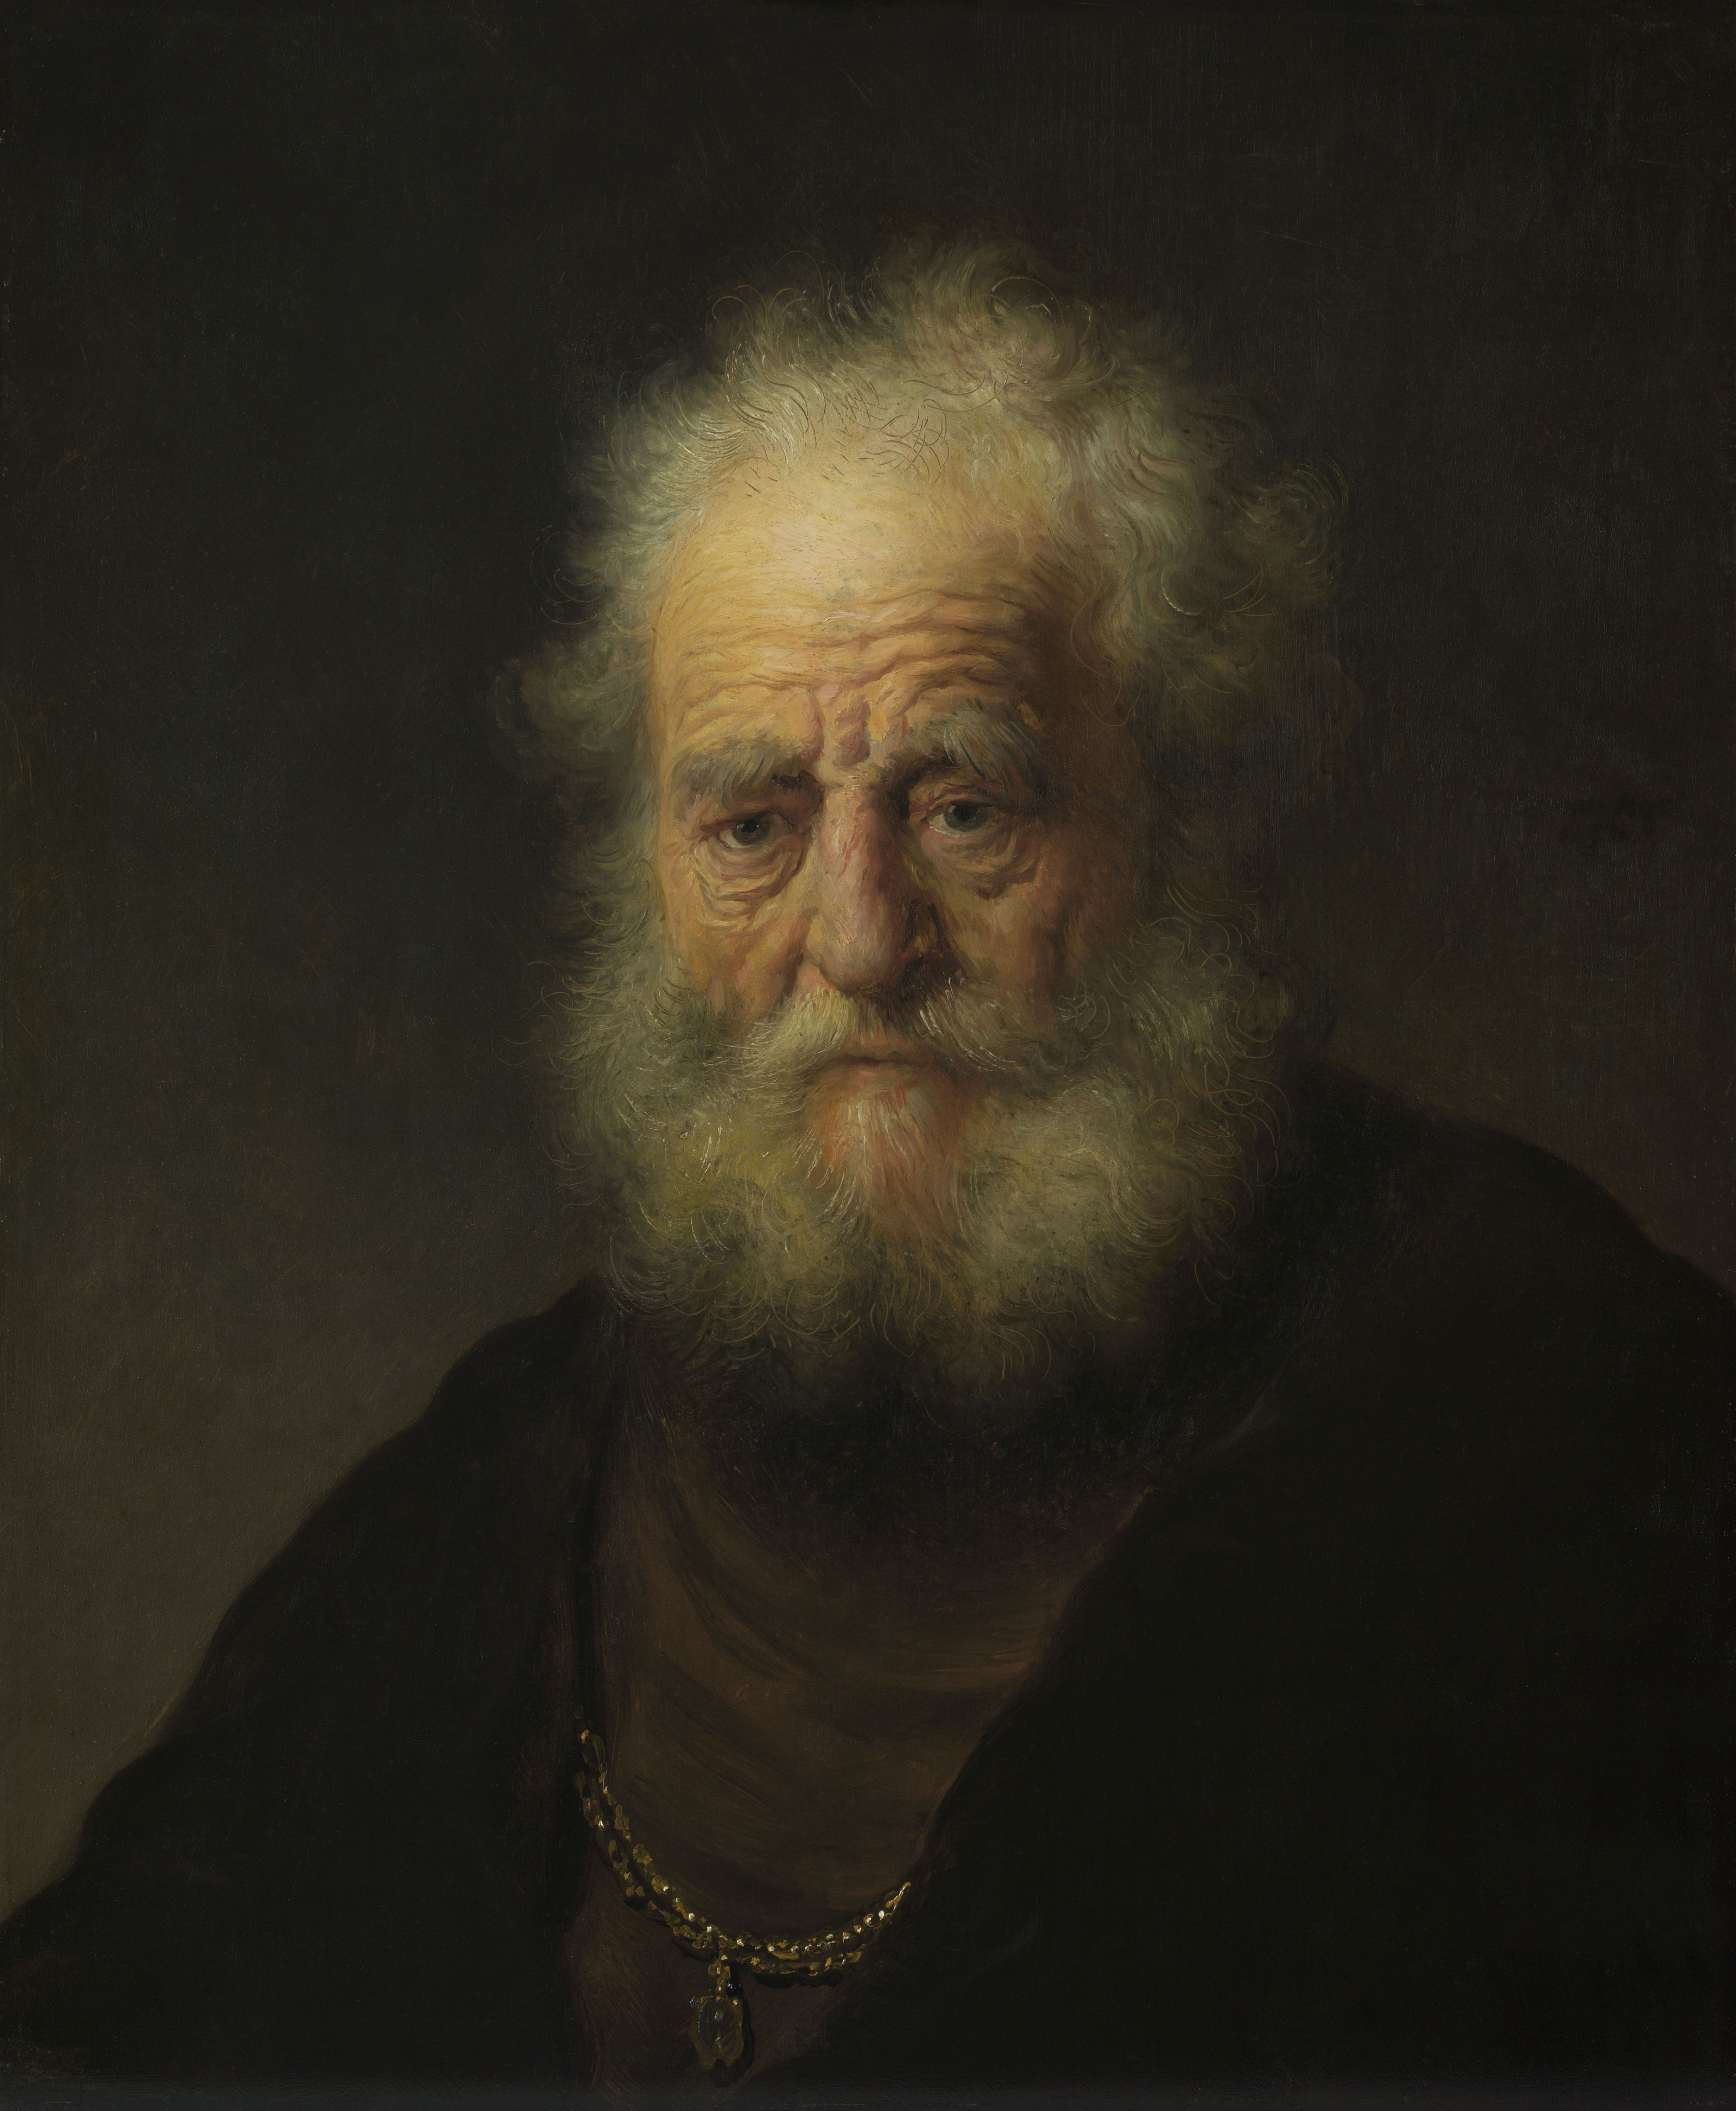 Filerembrandt Study Of An Old Man With A Gold Chain Gk 233jpg